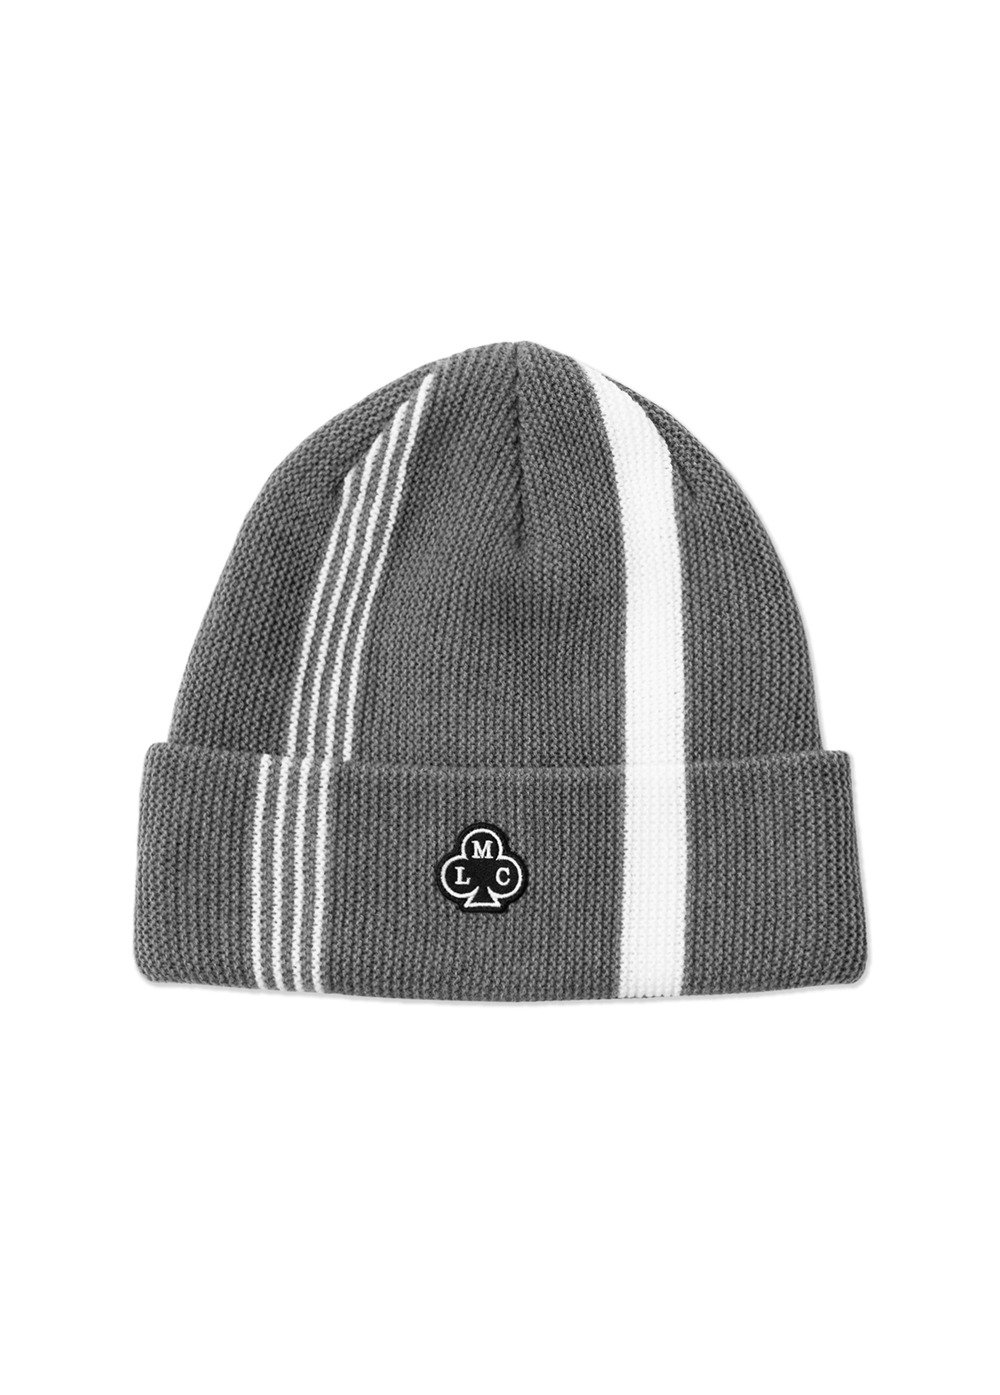 LMC CLUB RACING STRIPES BEANIE gray